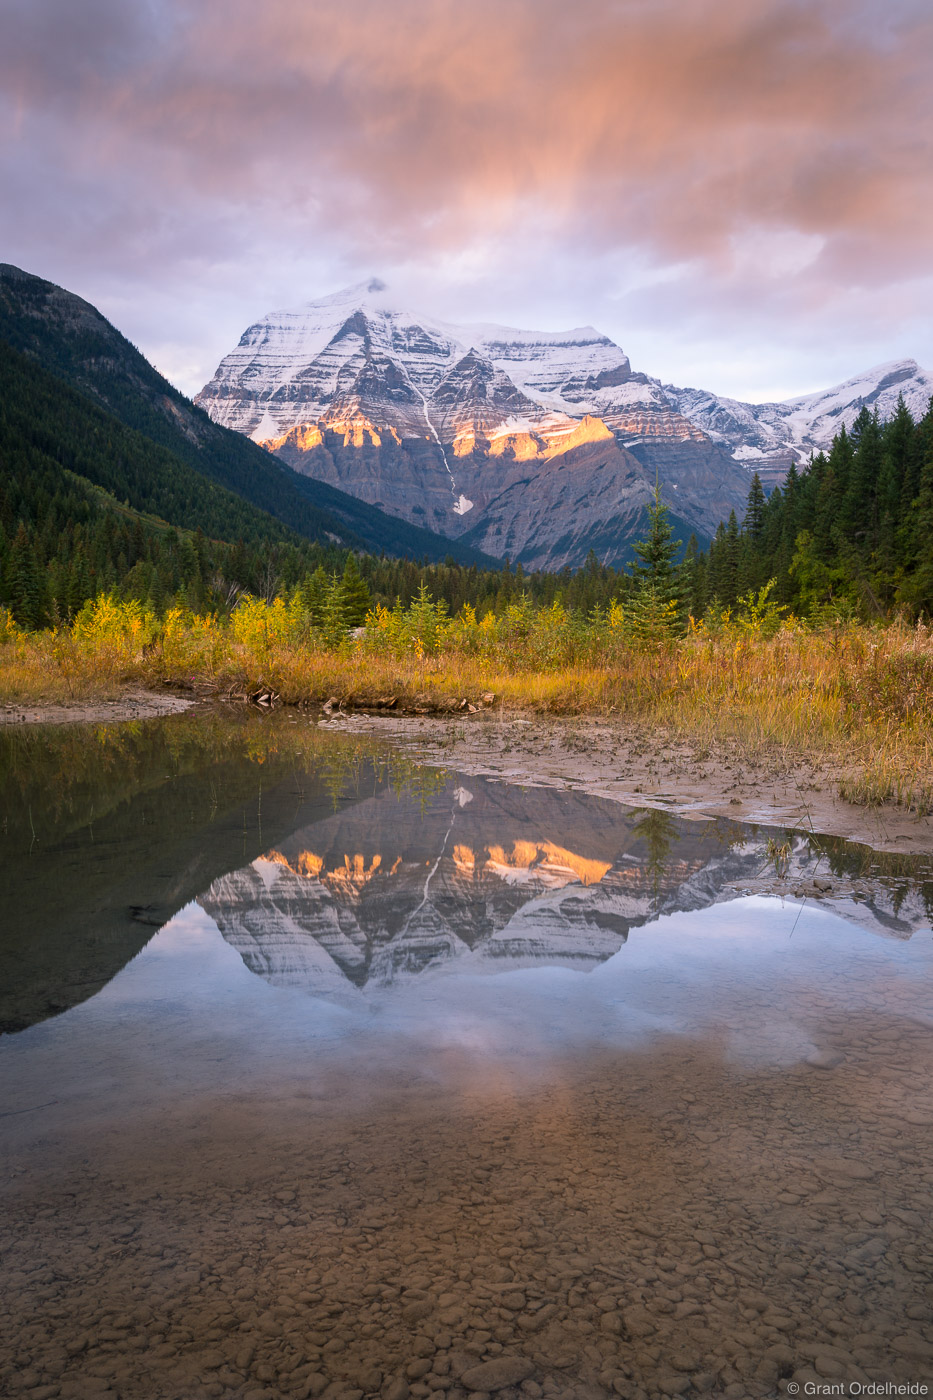 sunset, mount, robson, provincial, park, british, columbia, canada, highest, peak, rockies,, photo